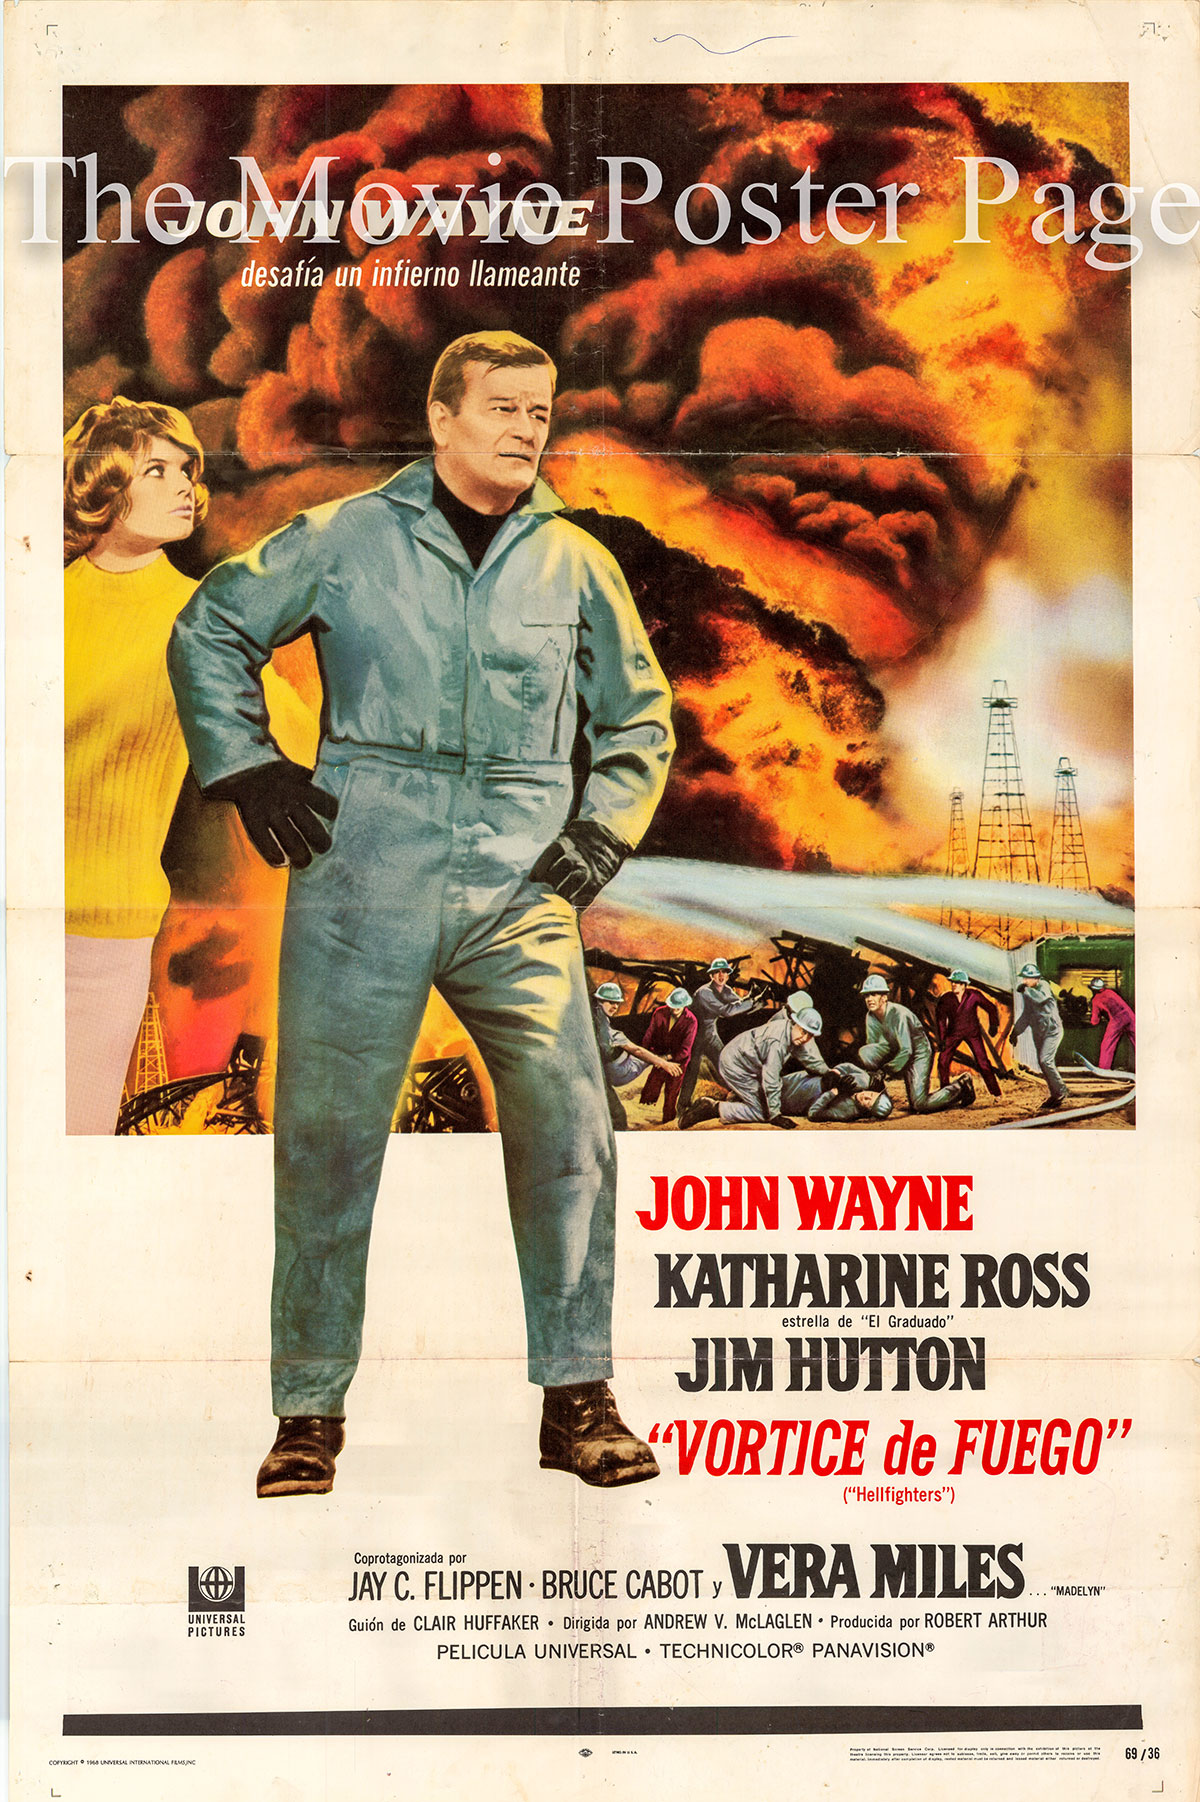 Pictured is a Spanish promotional one-sheet poster for the 1969 Andrew V. McLaglen film Hellfighters starring John Wayne as Chance Buckman.